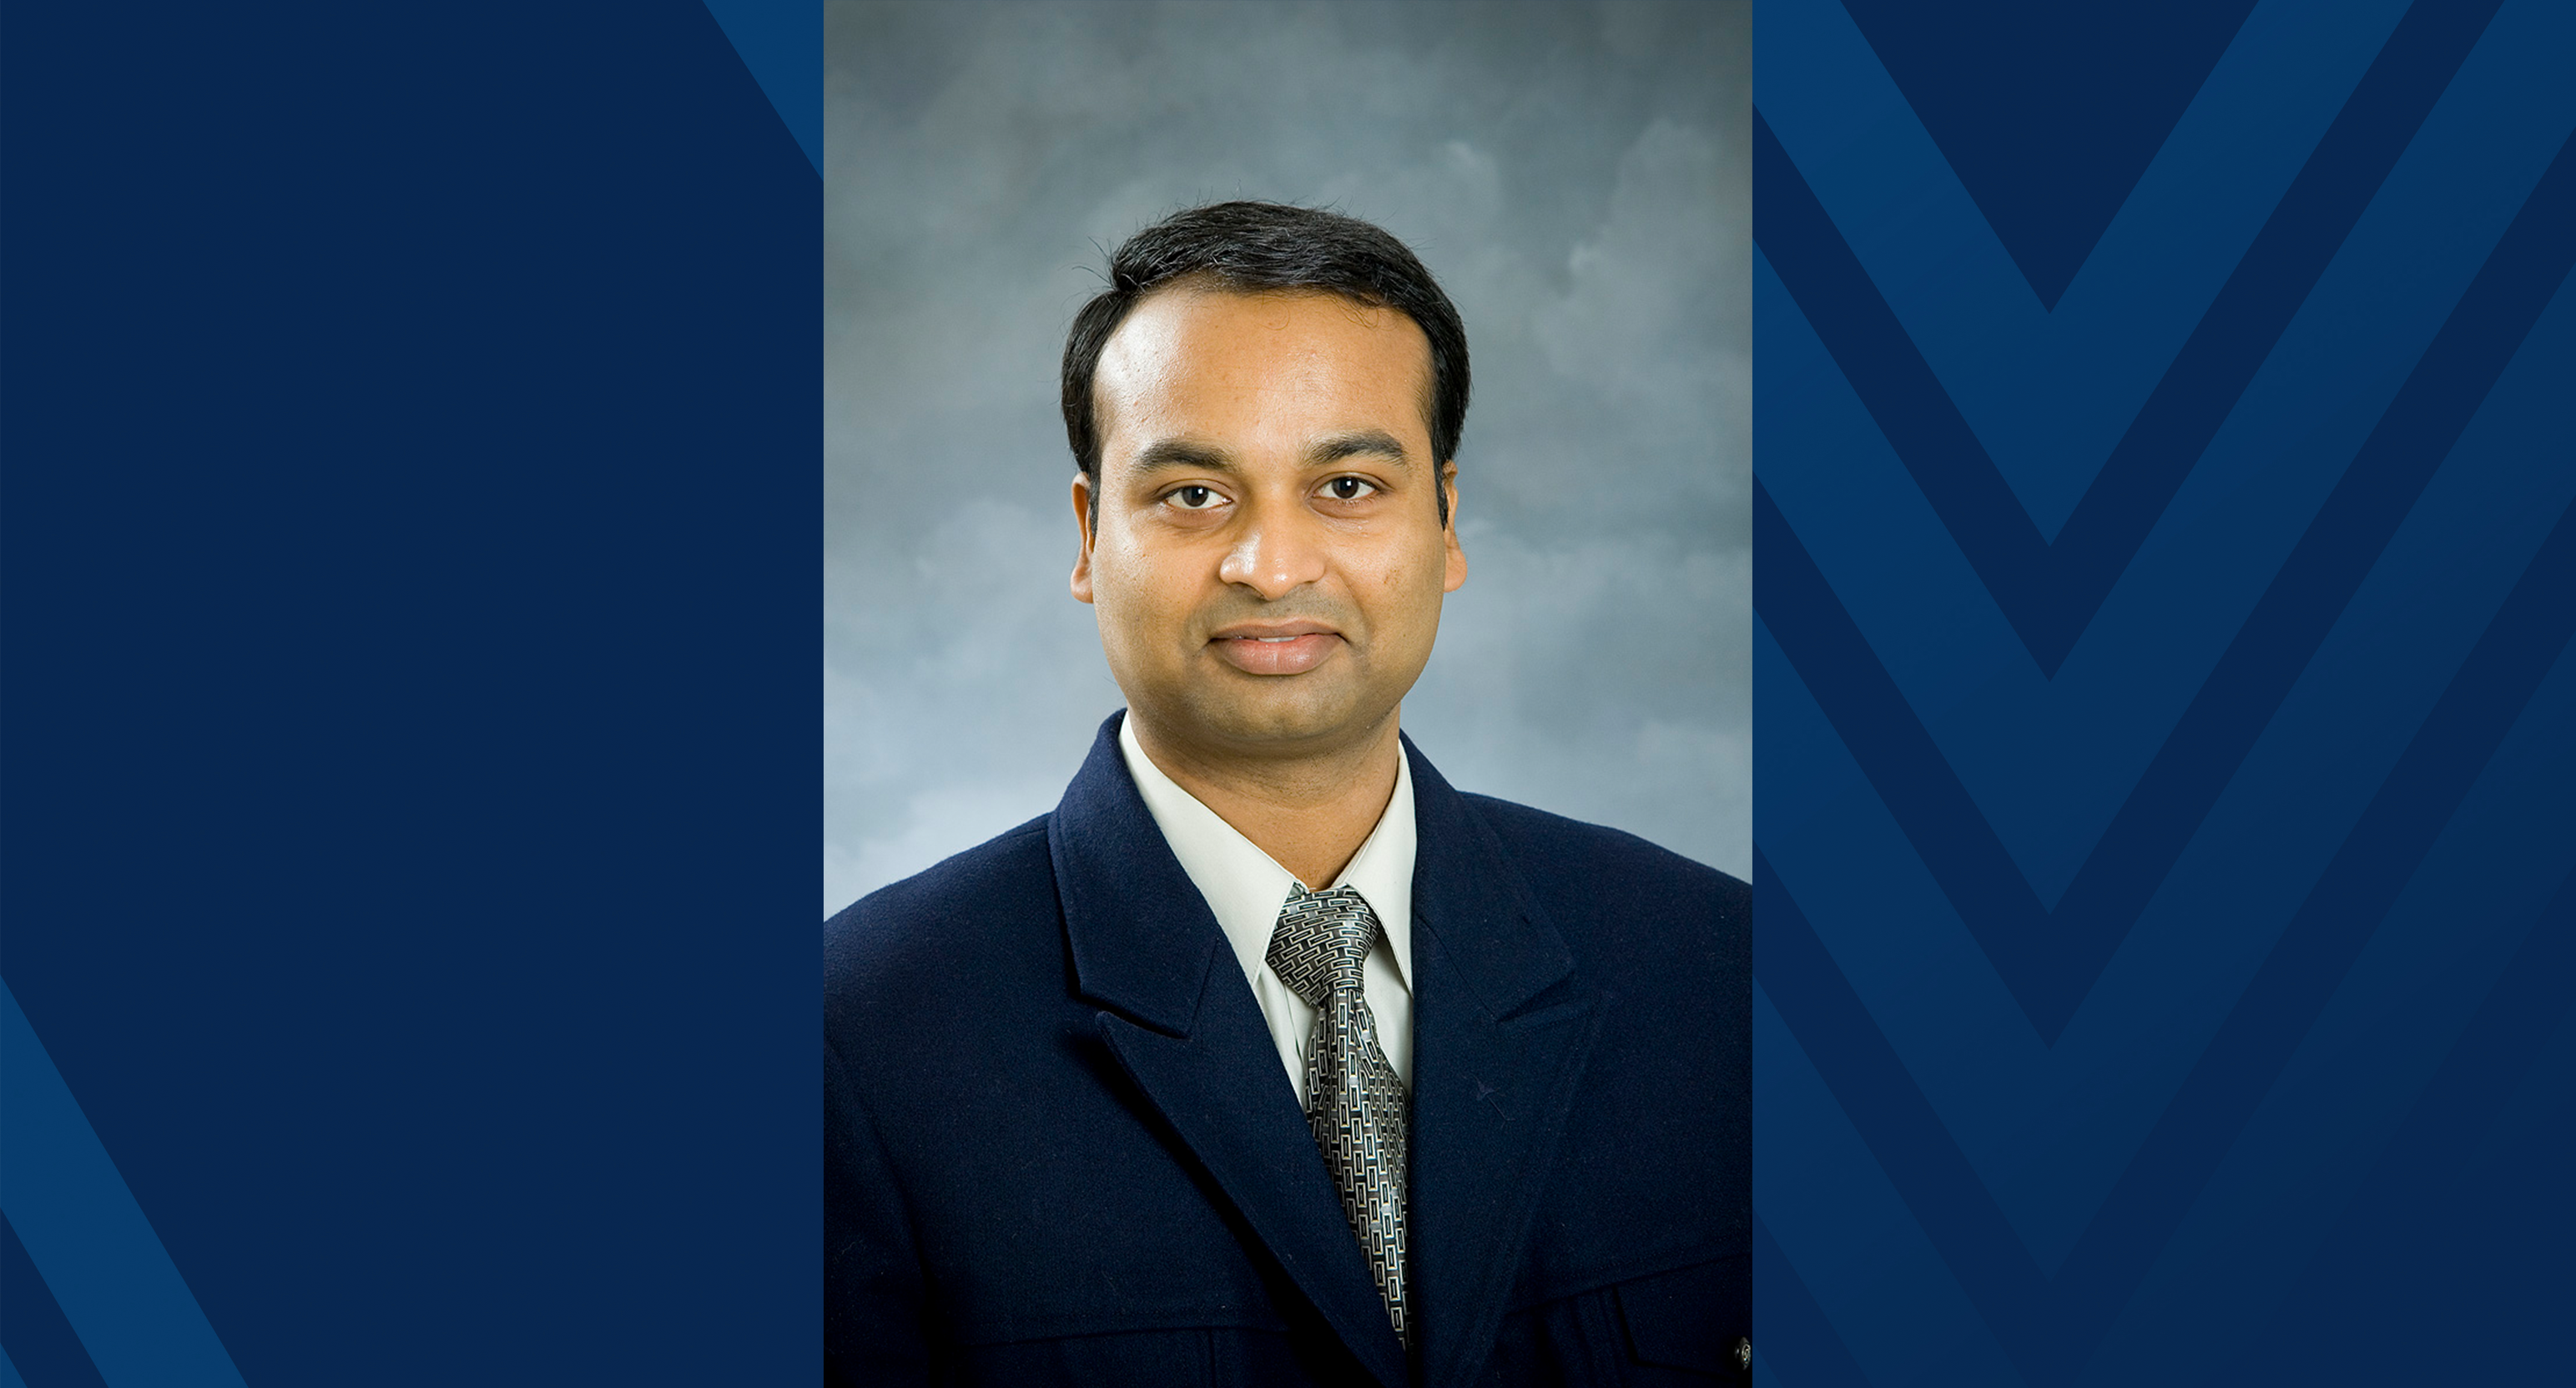 Anurag Srivastavawill join the Lane Department as professor and chair.